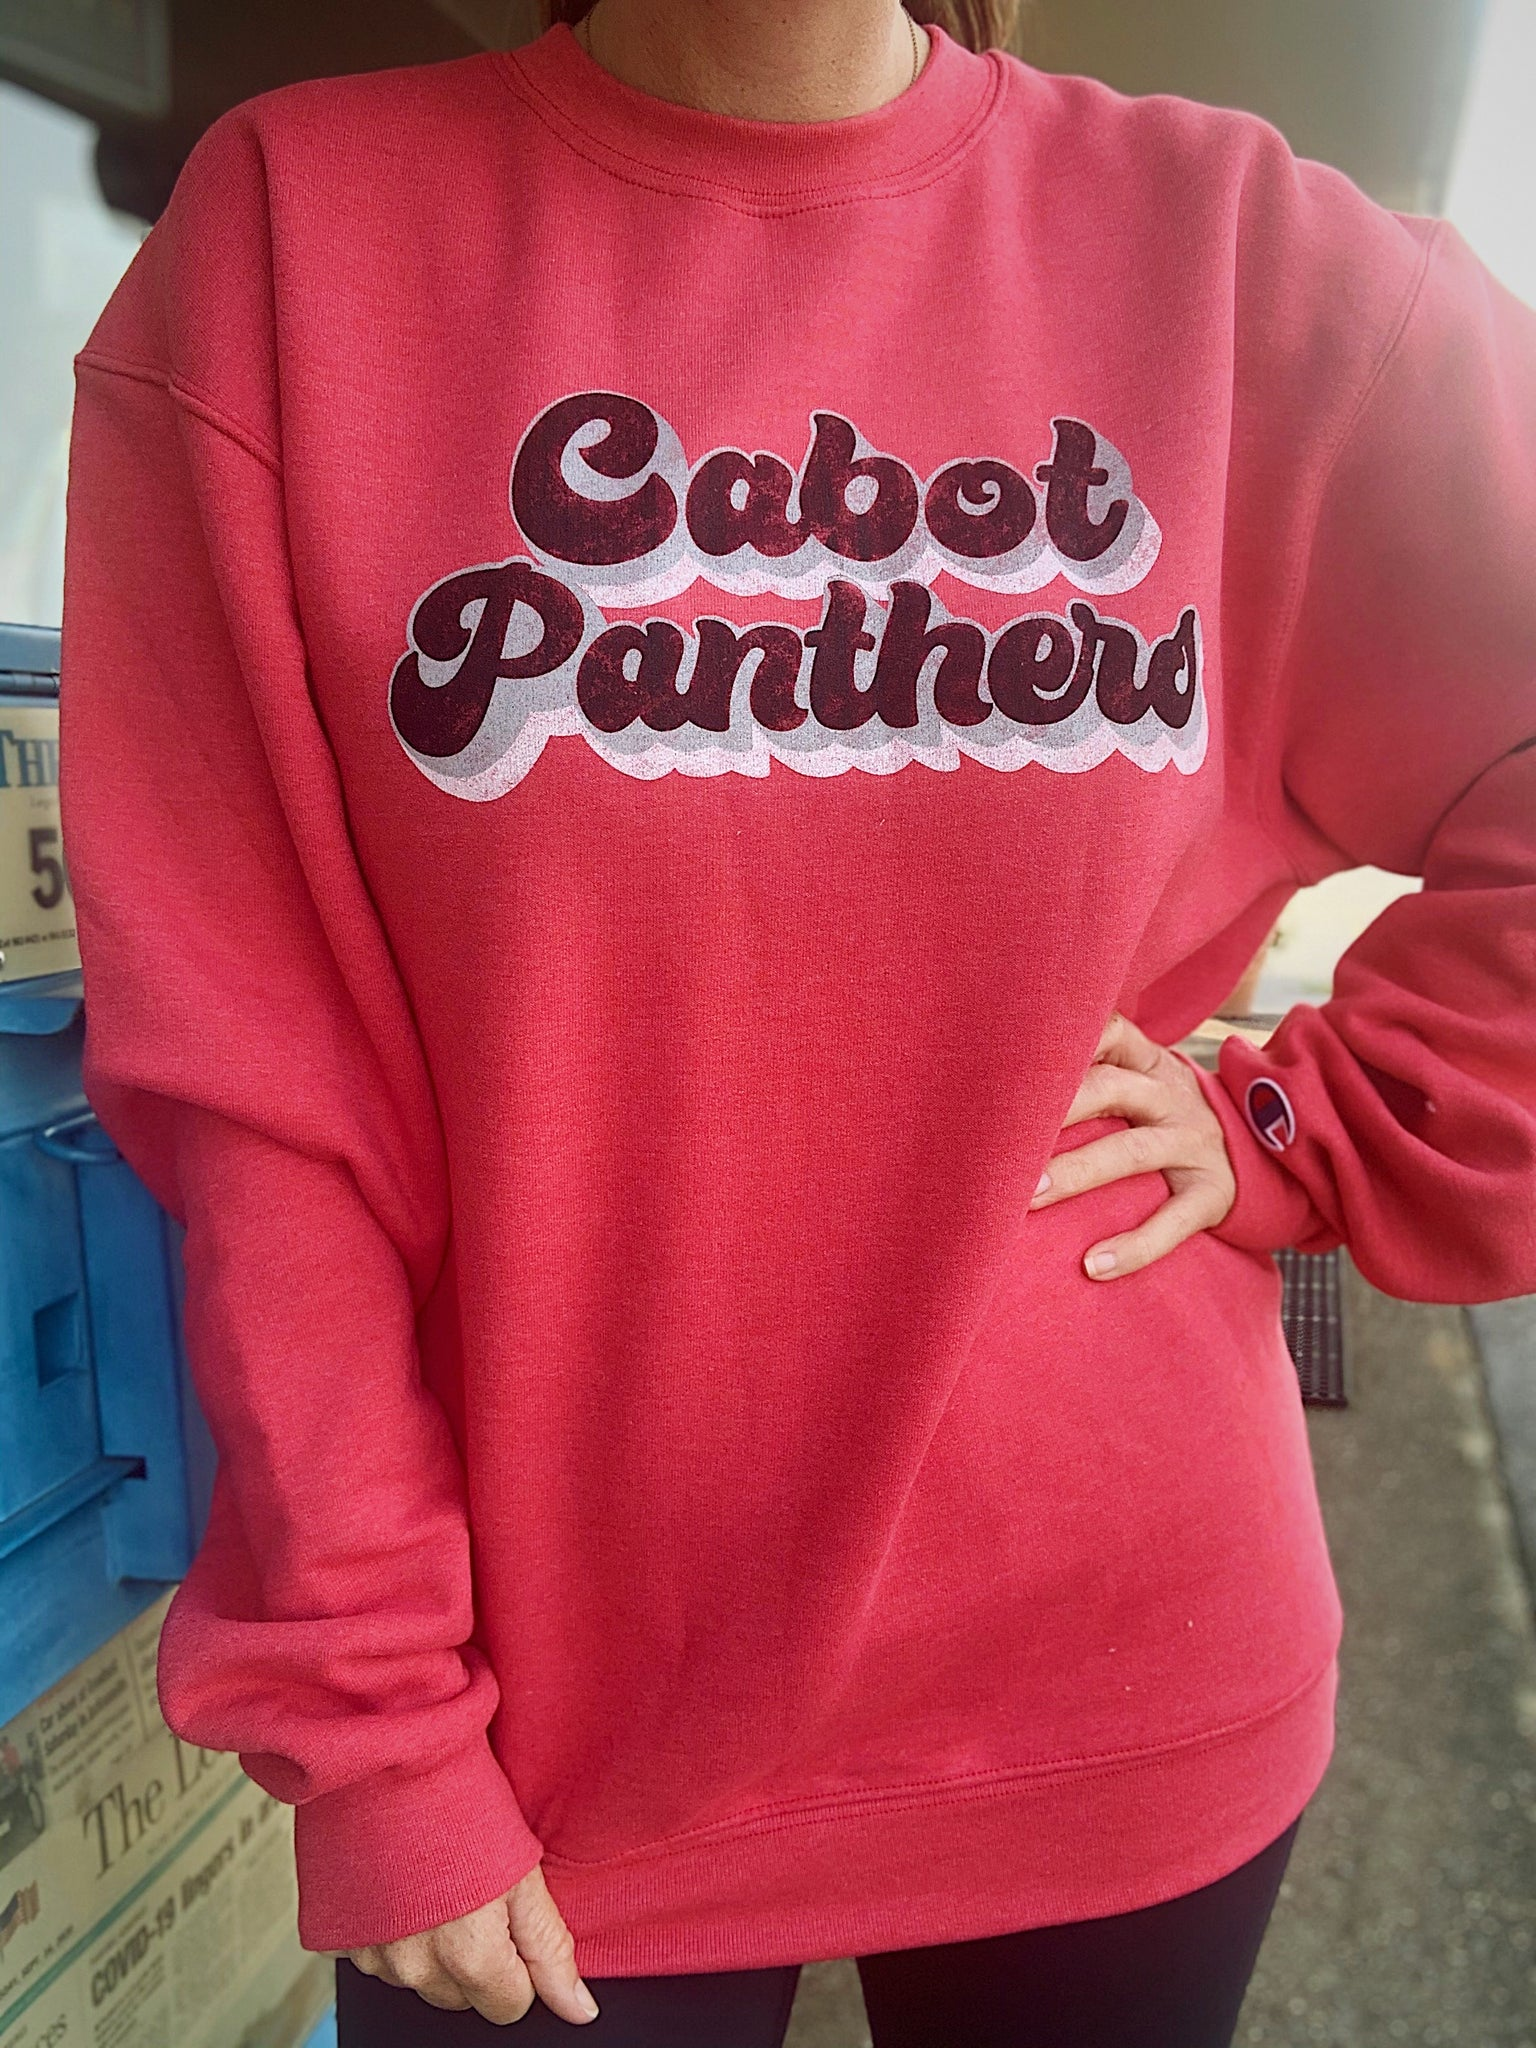 Cabot Panthers Sweatshirt